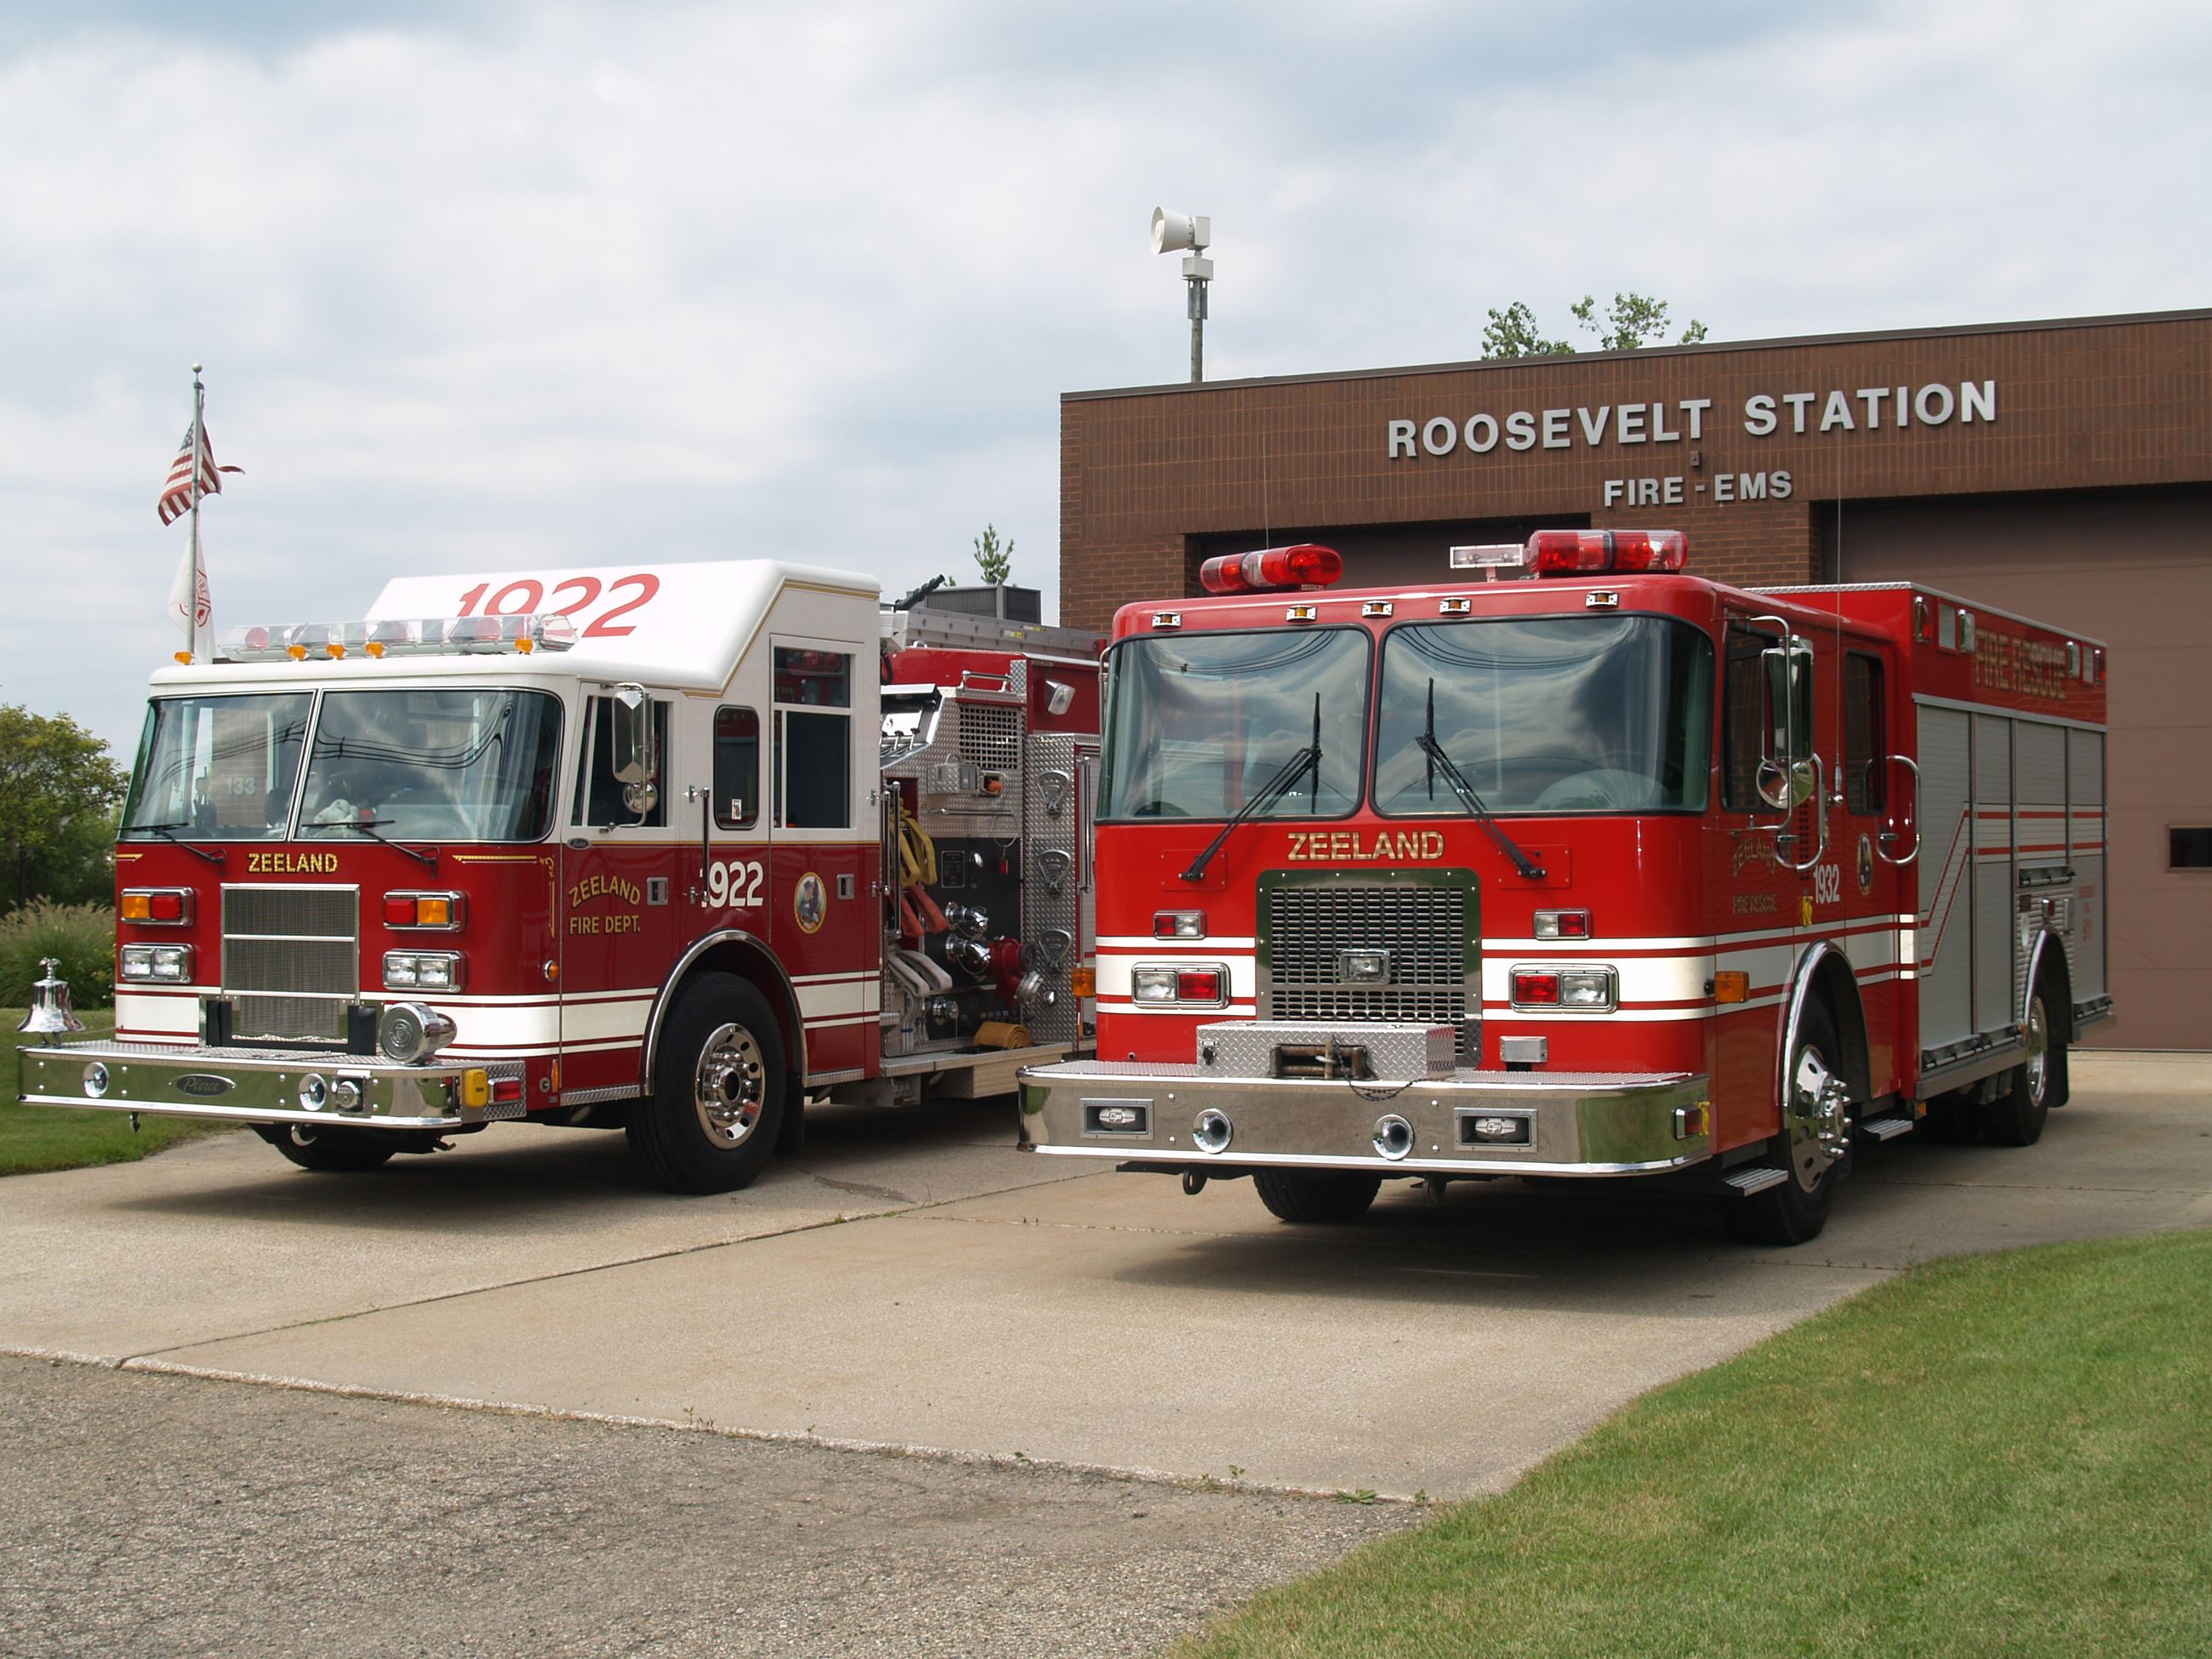 Roosevelt Fire Station